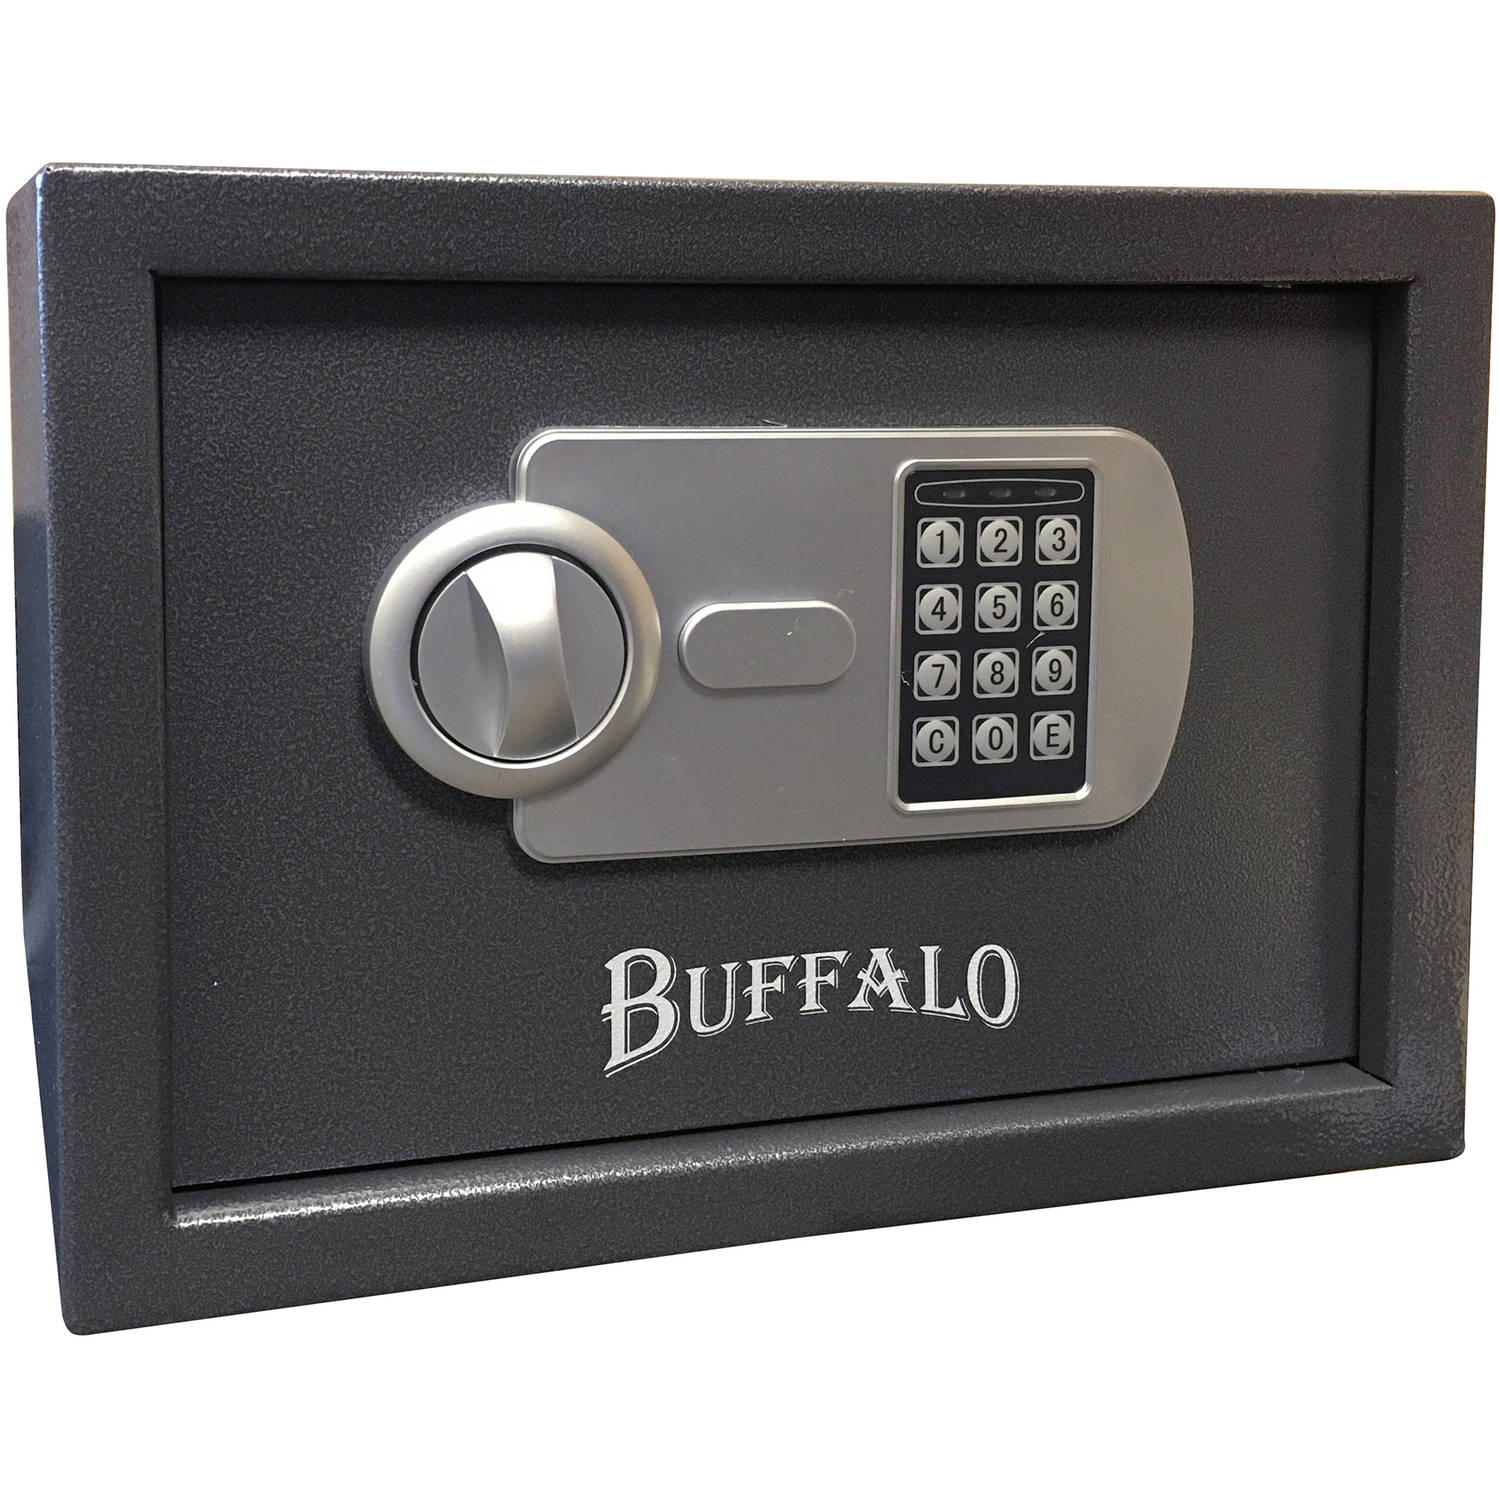 Buffalo Outdoor Pistol Safe with Keypad Lock by Buffalo Corp